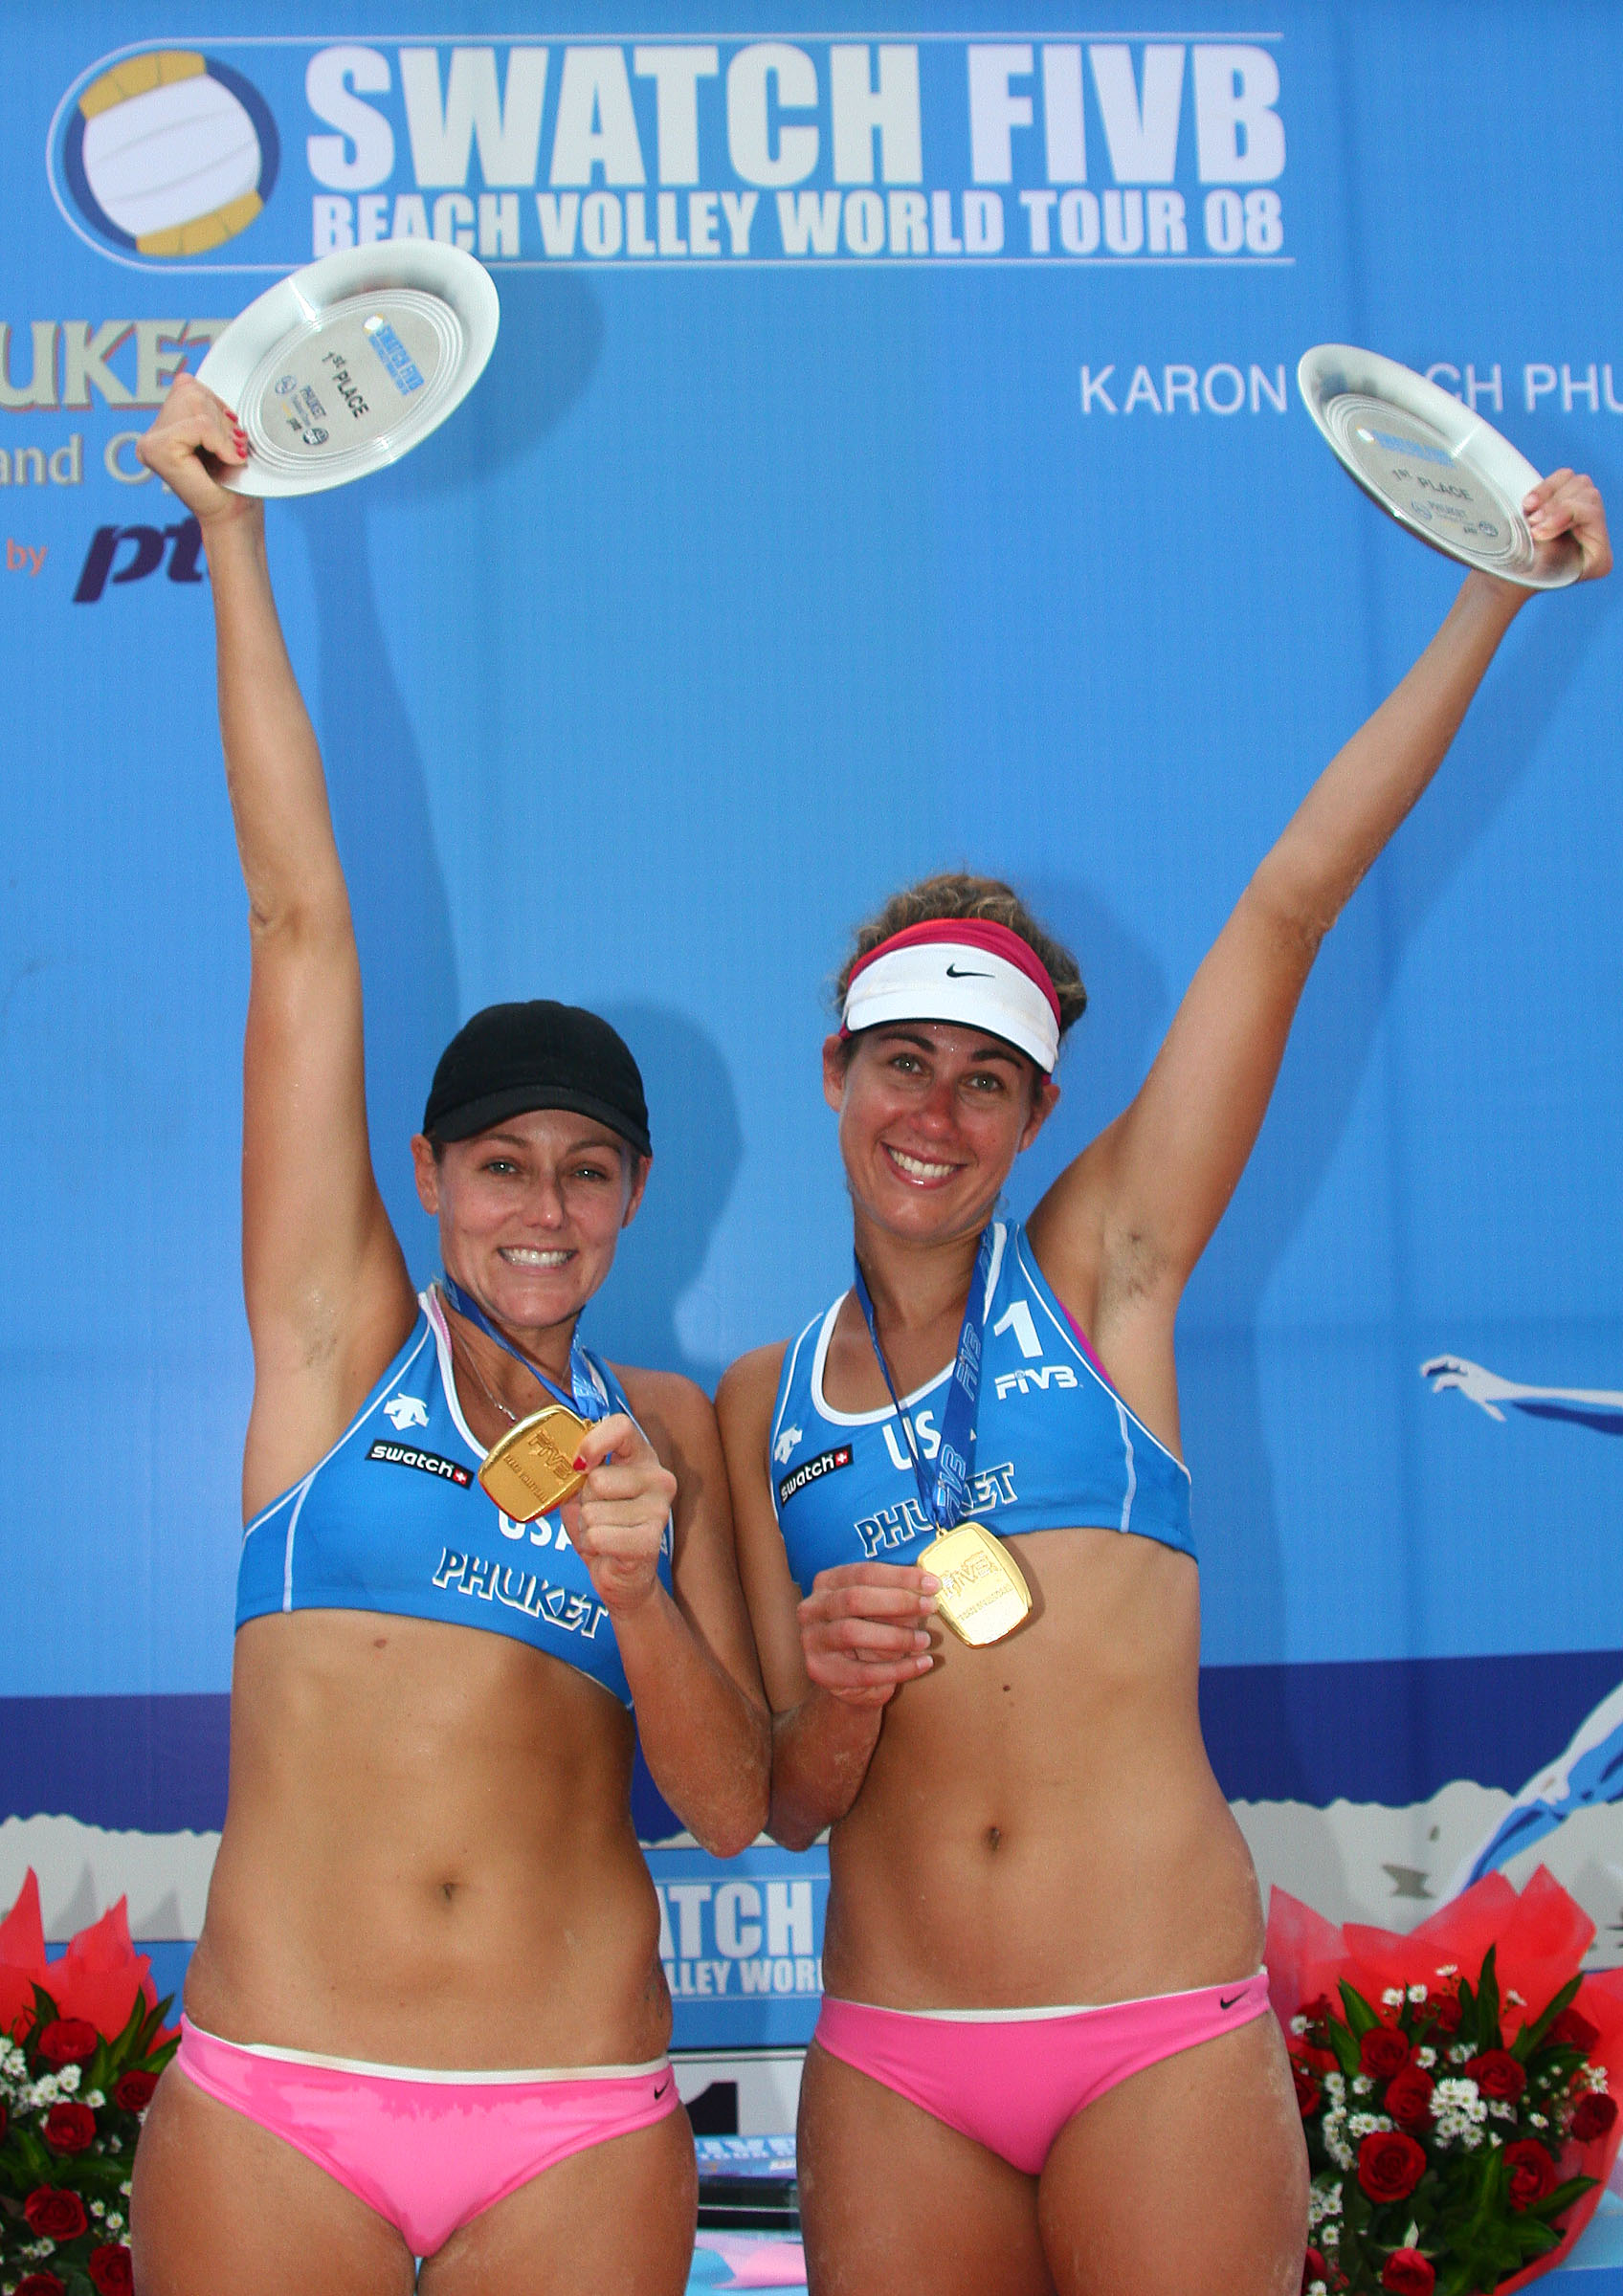 beachvolleyball fivb